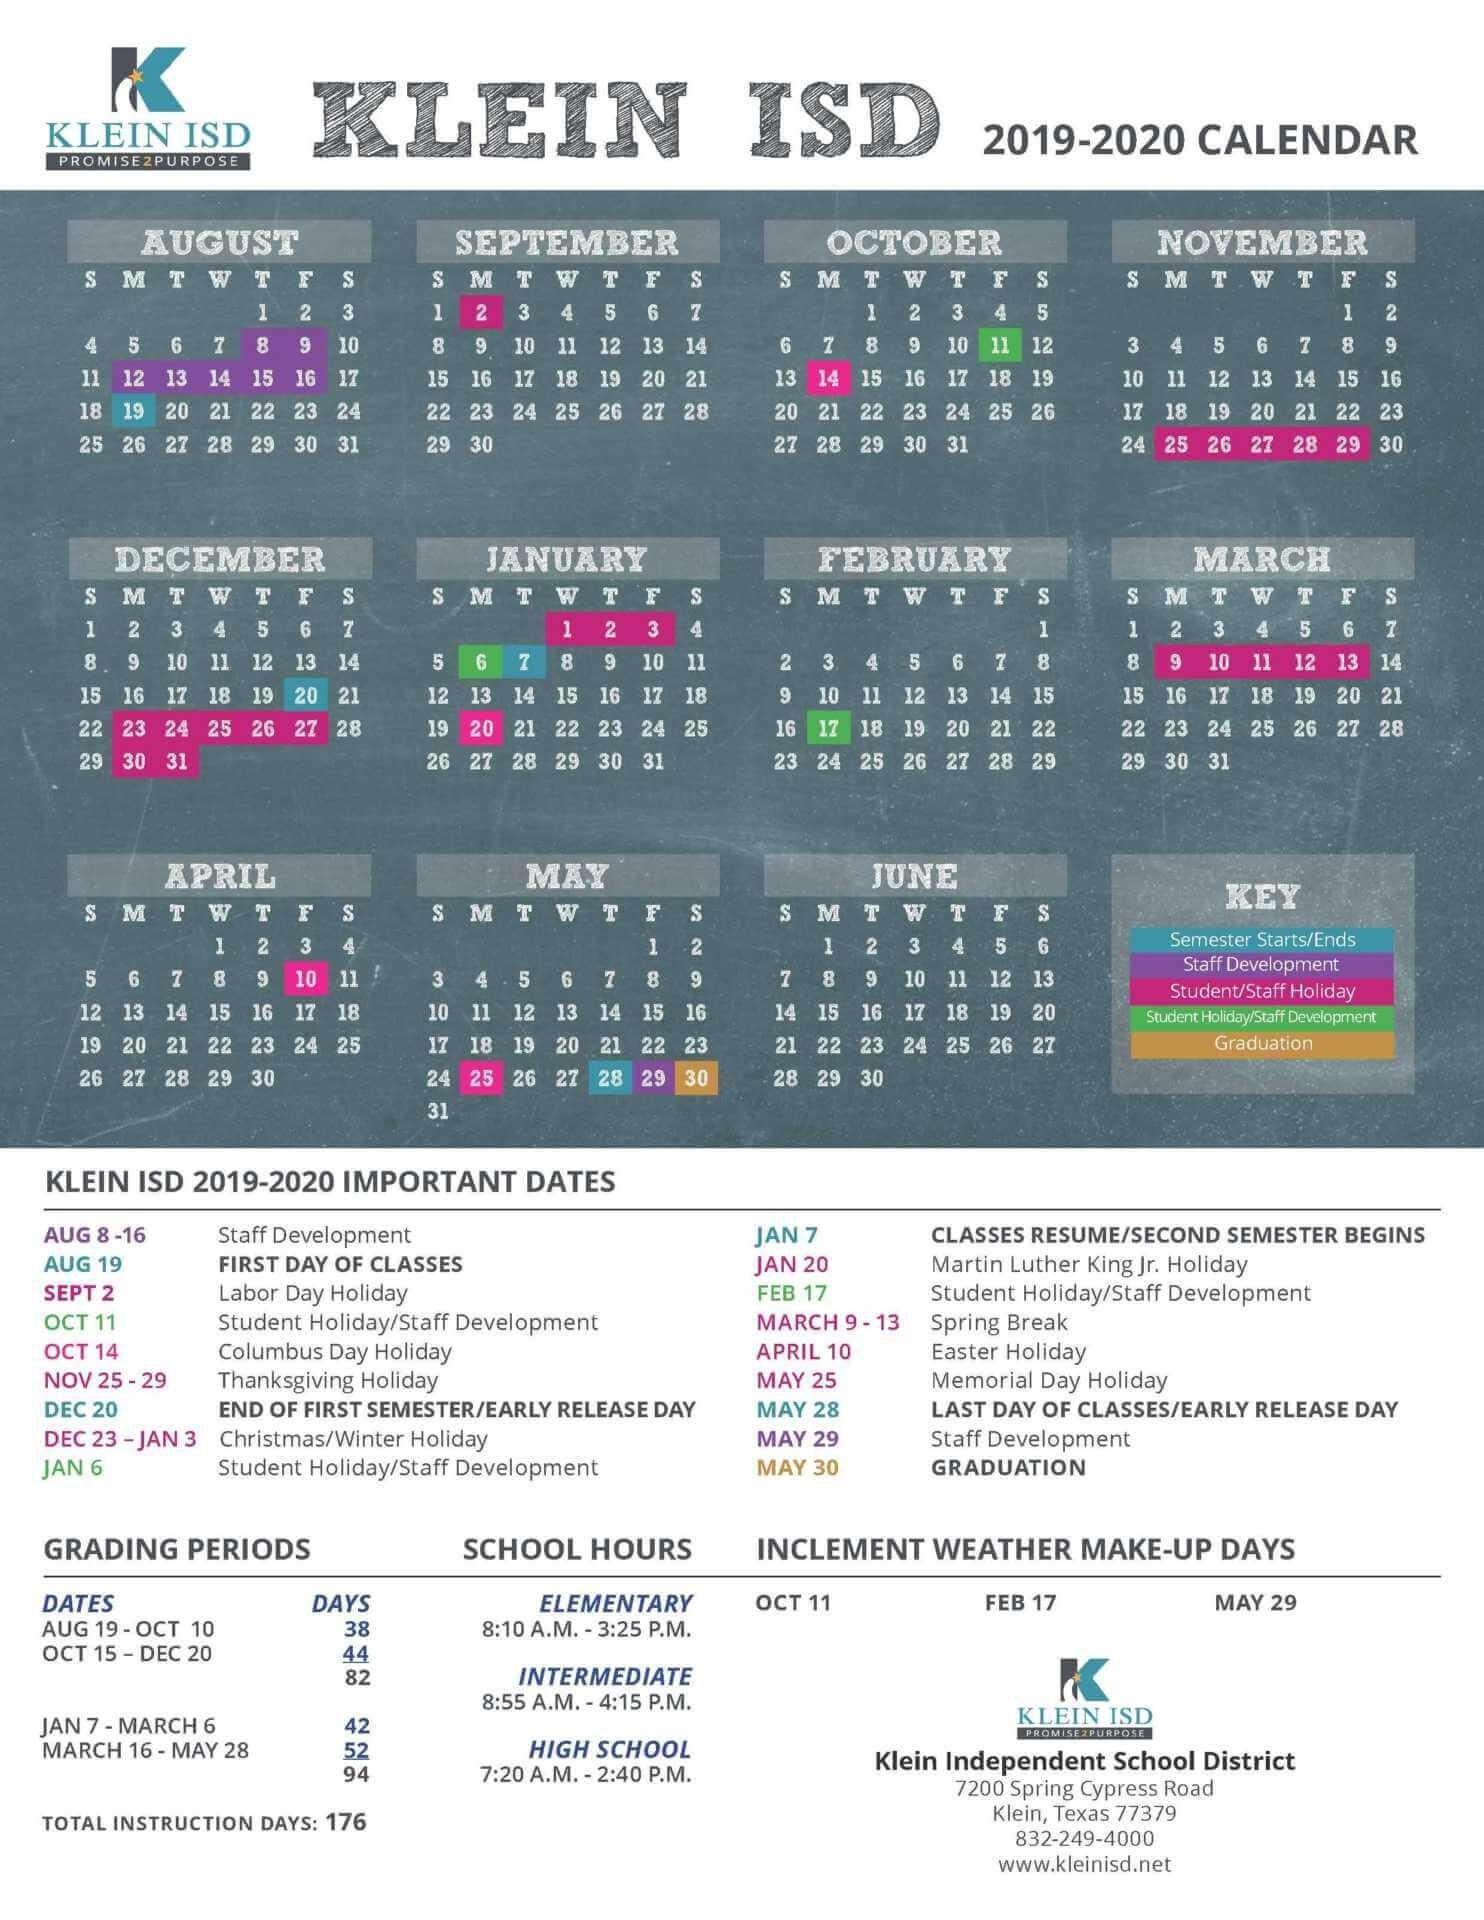 Important Current School Year Calendar Dates To Remember